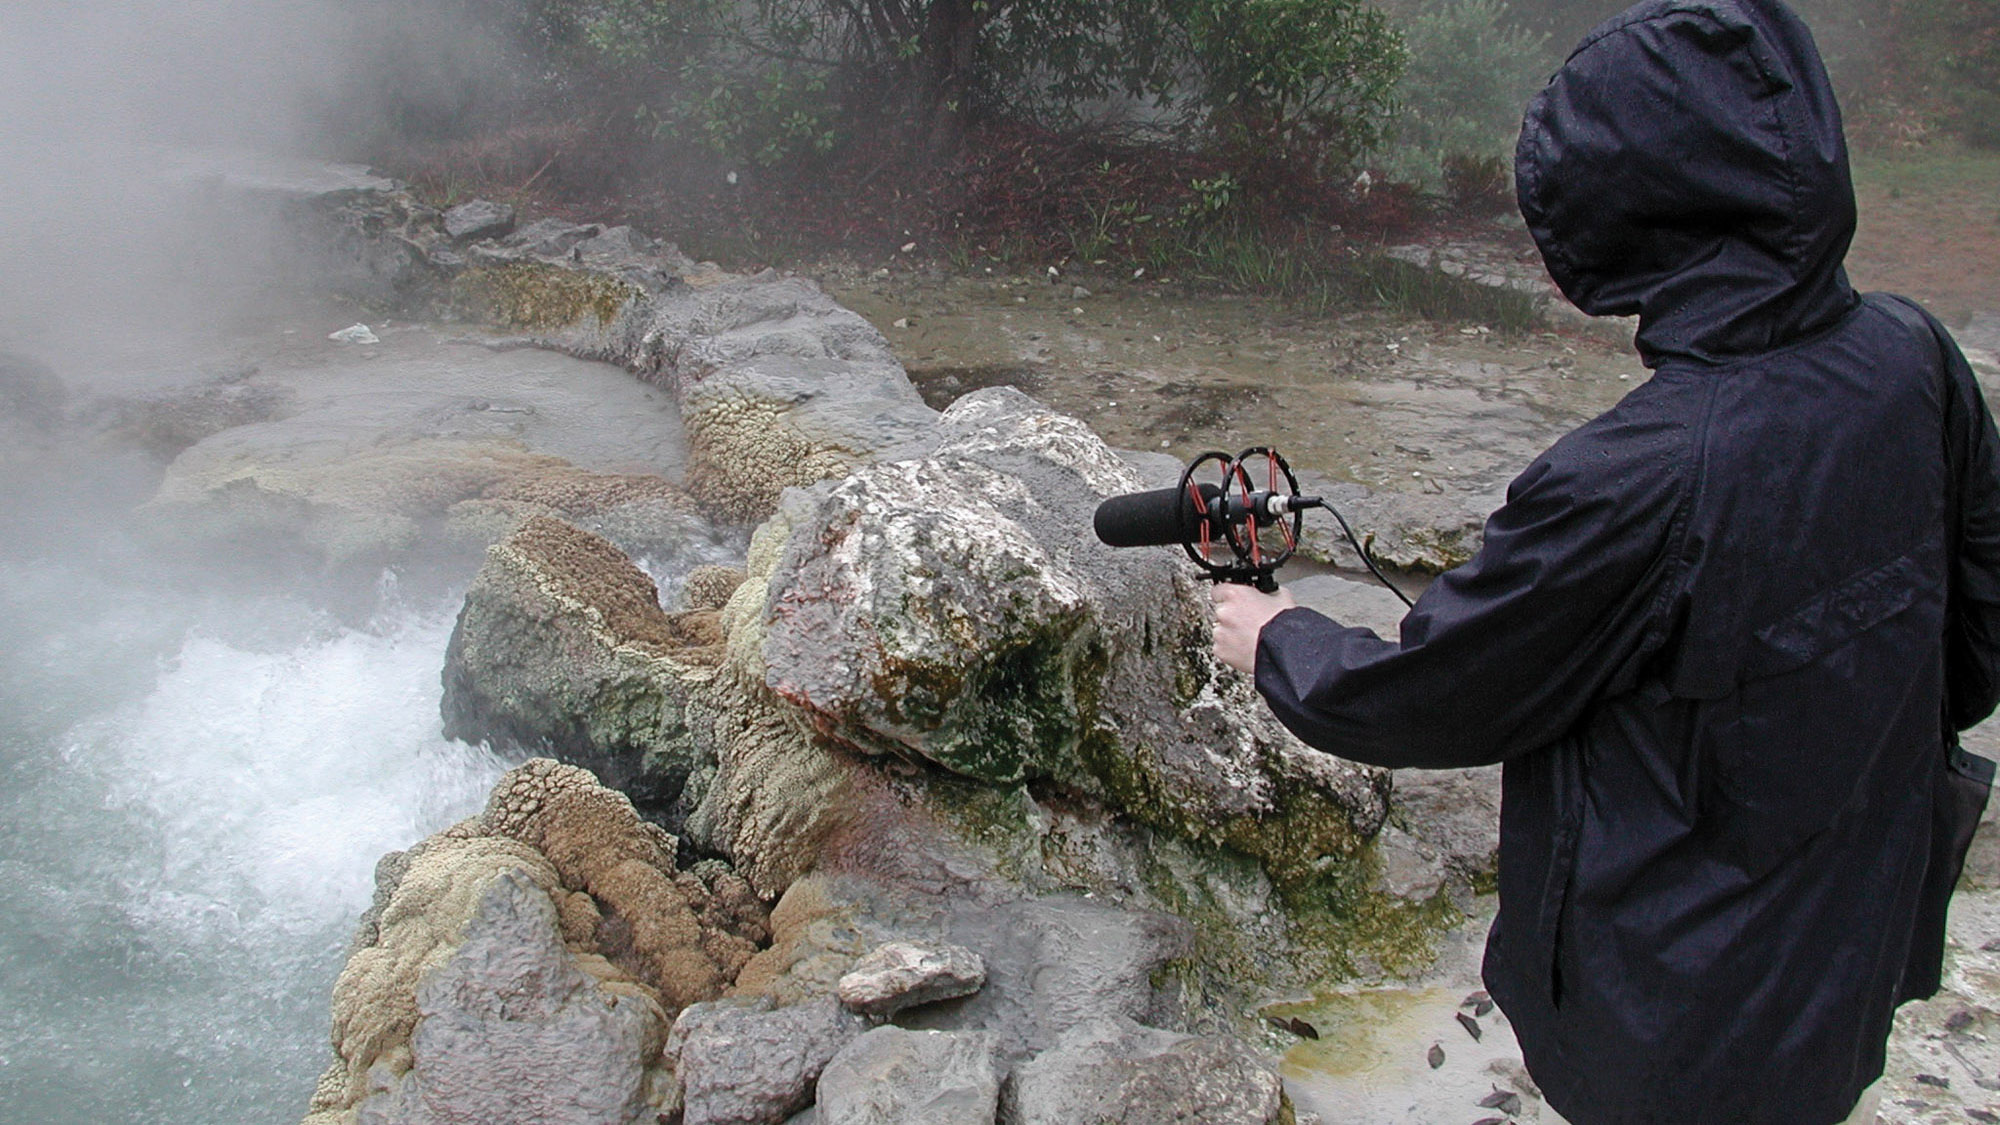 a person in a blue coat holding a microphone over some hot springs.